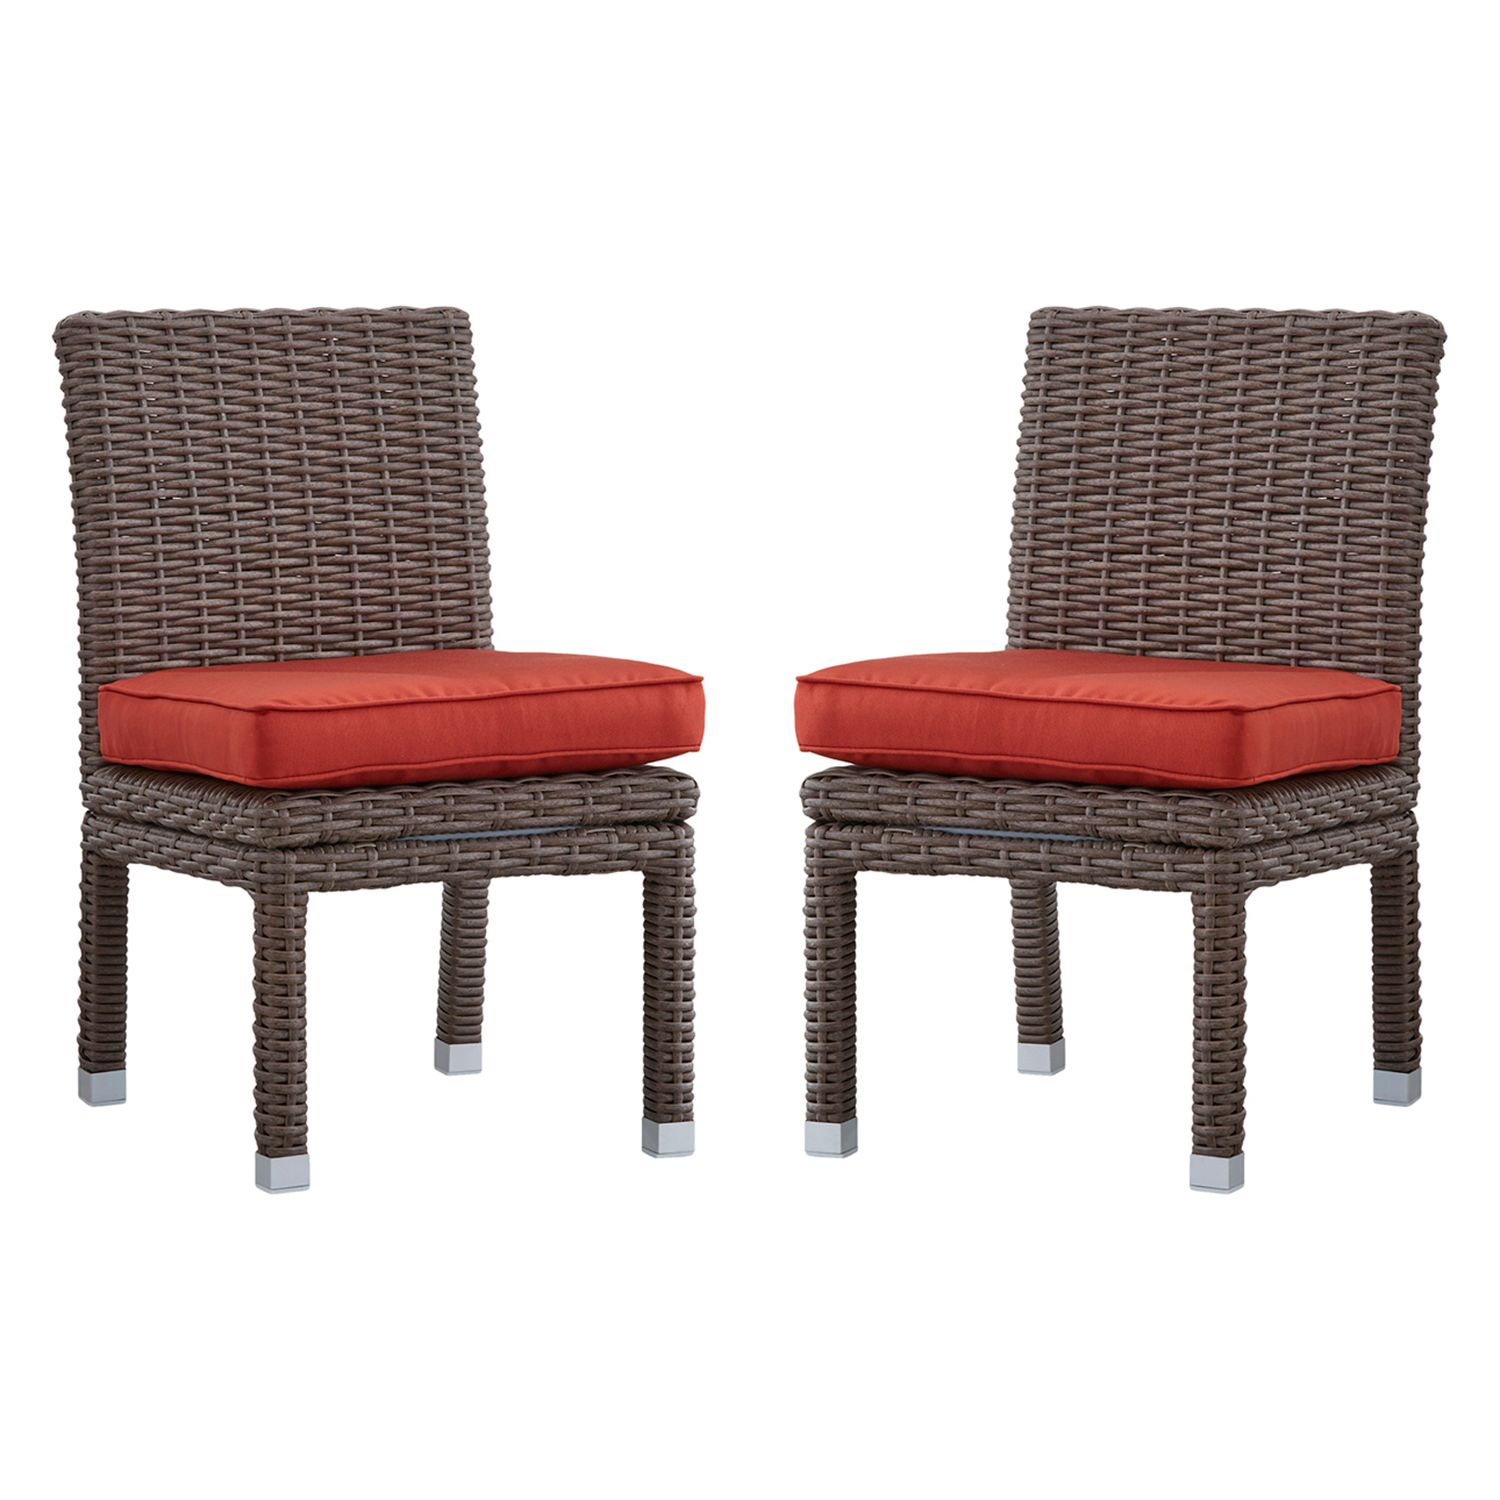 HomeVance Ravinia Mocha Wicker Dining Chair 2 Piece Set. Brown Gray Red